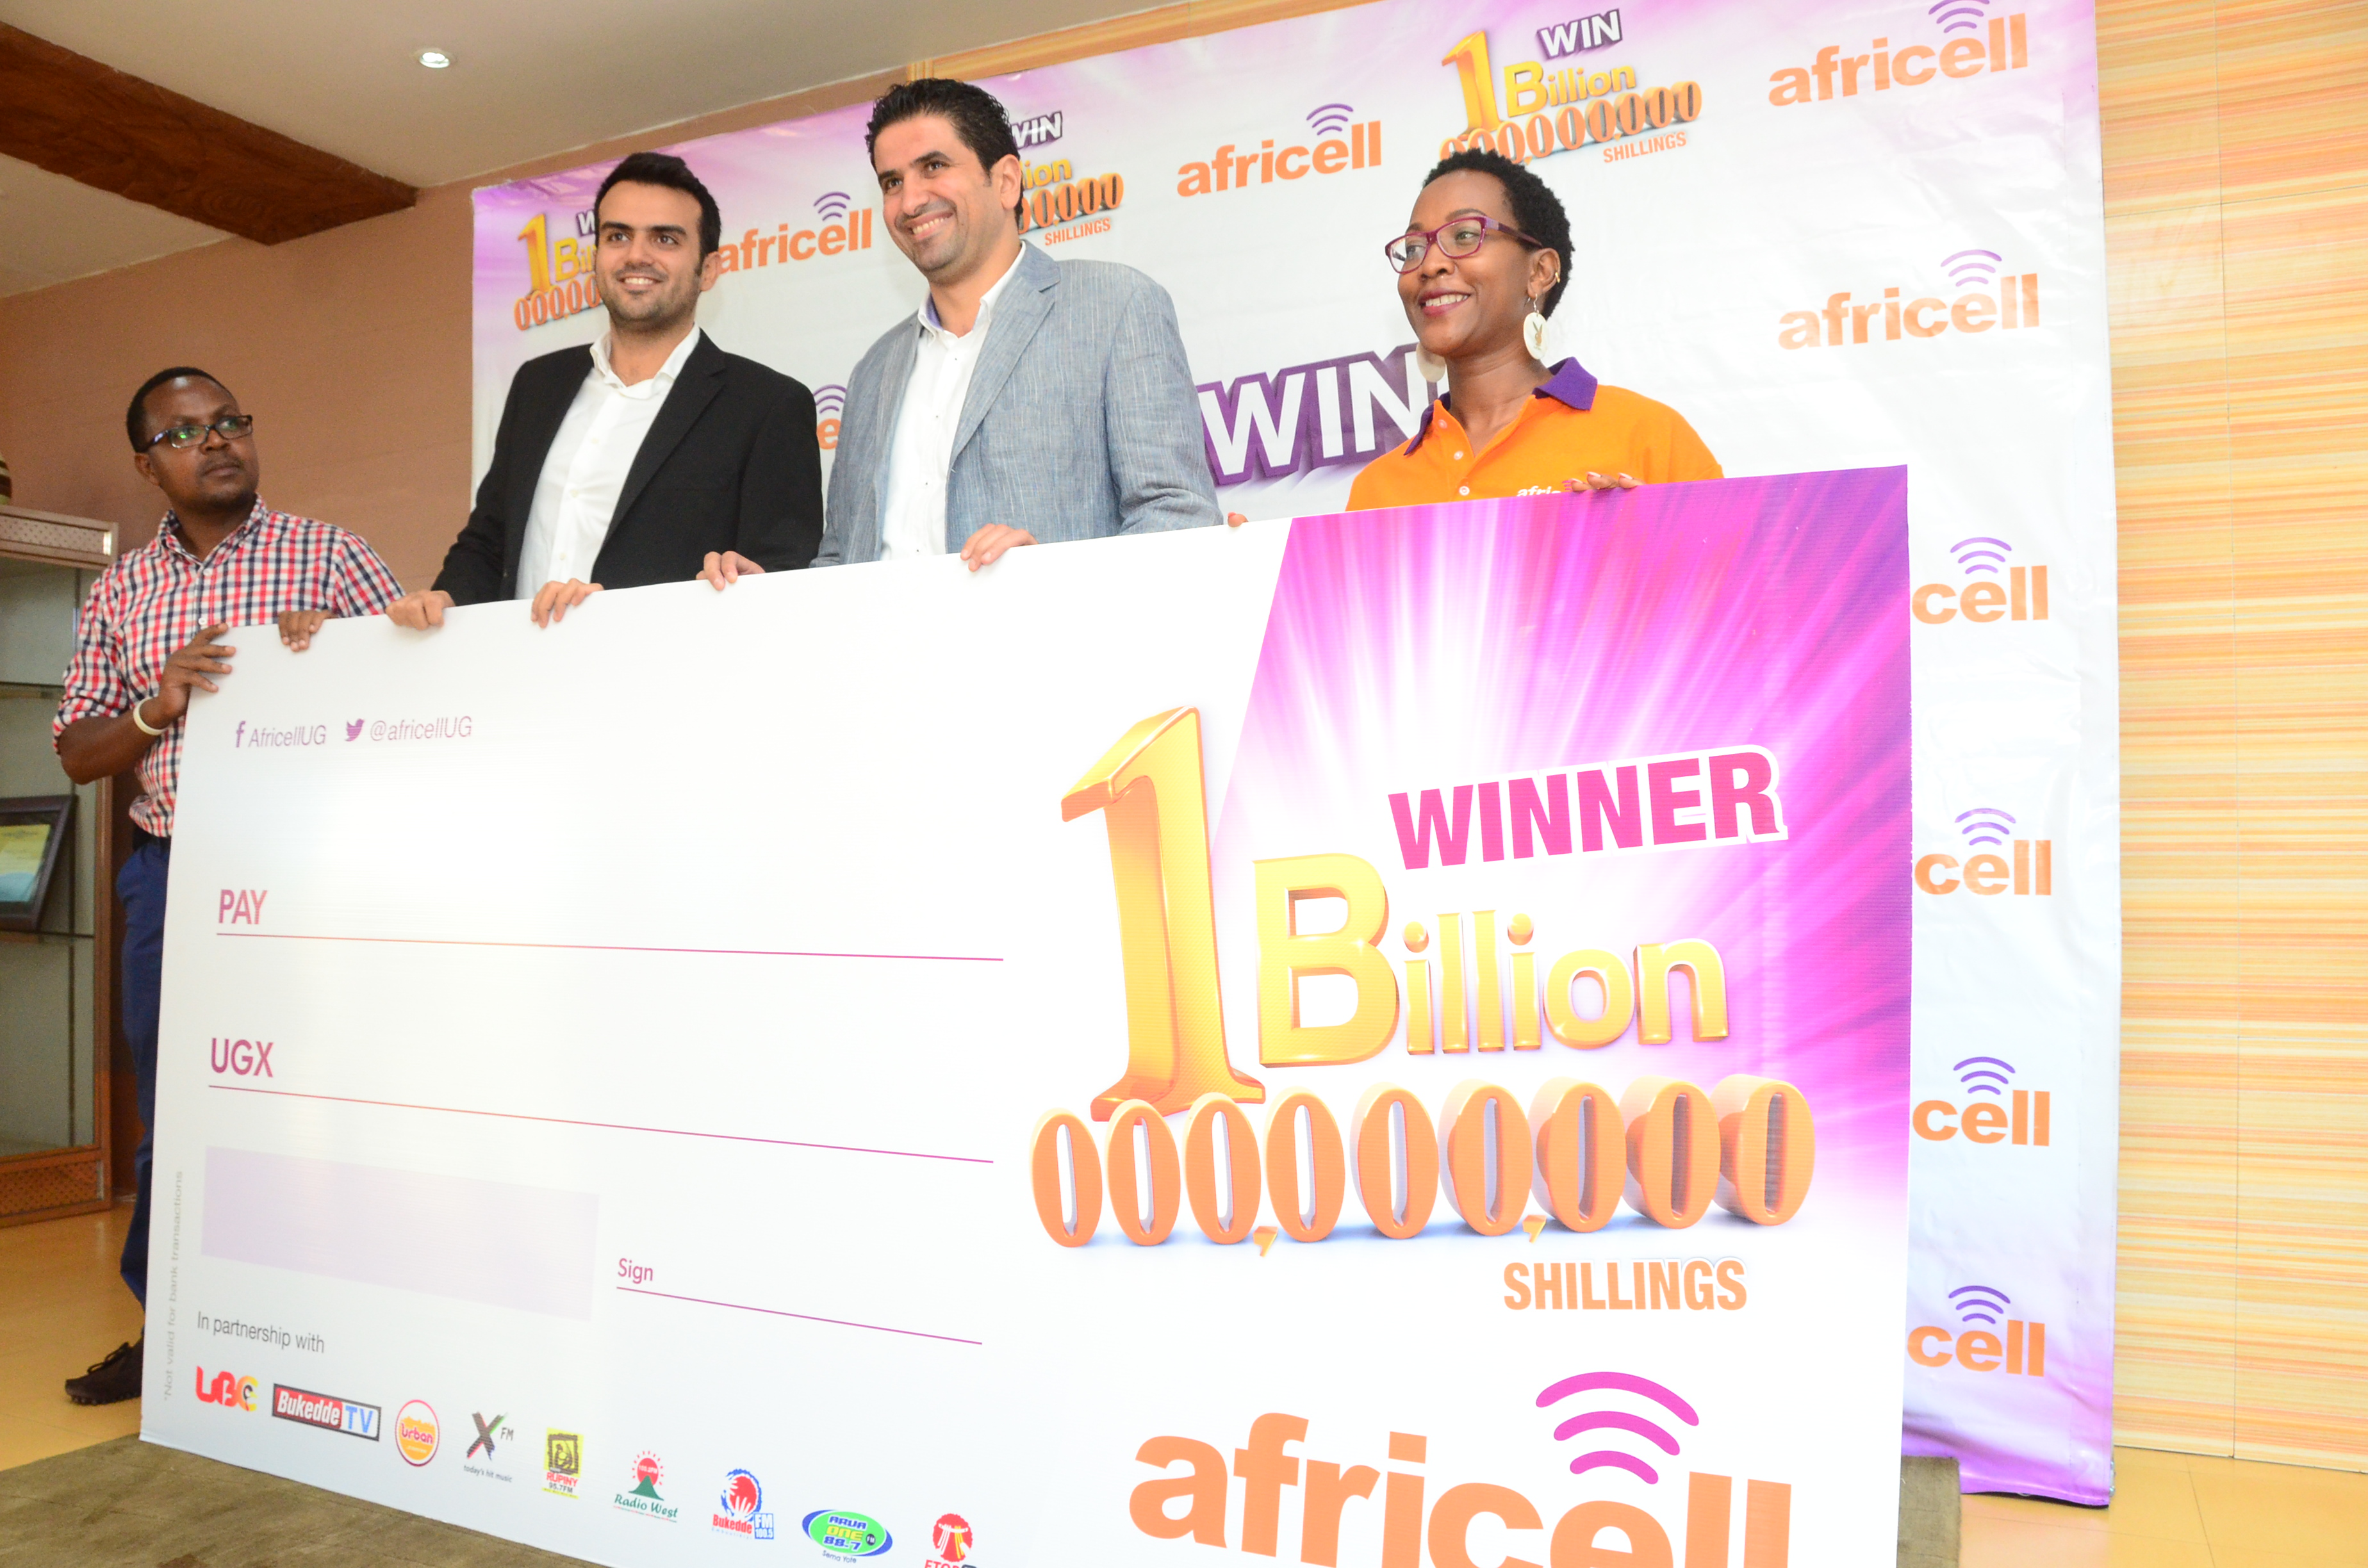 steven-baryevuga-corporate-communications-milad-khairallahcommercial-director-mohammad-ghaddar-chief-operations-officer-nelly-nalugwa-media-coordinator-at-the-launch-of-africell-one-billion